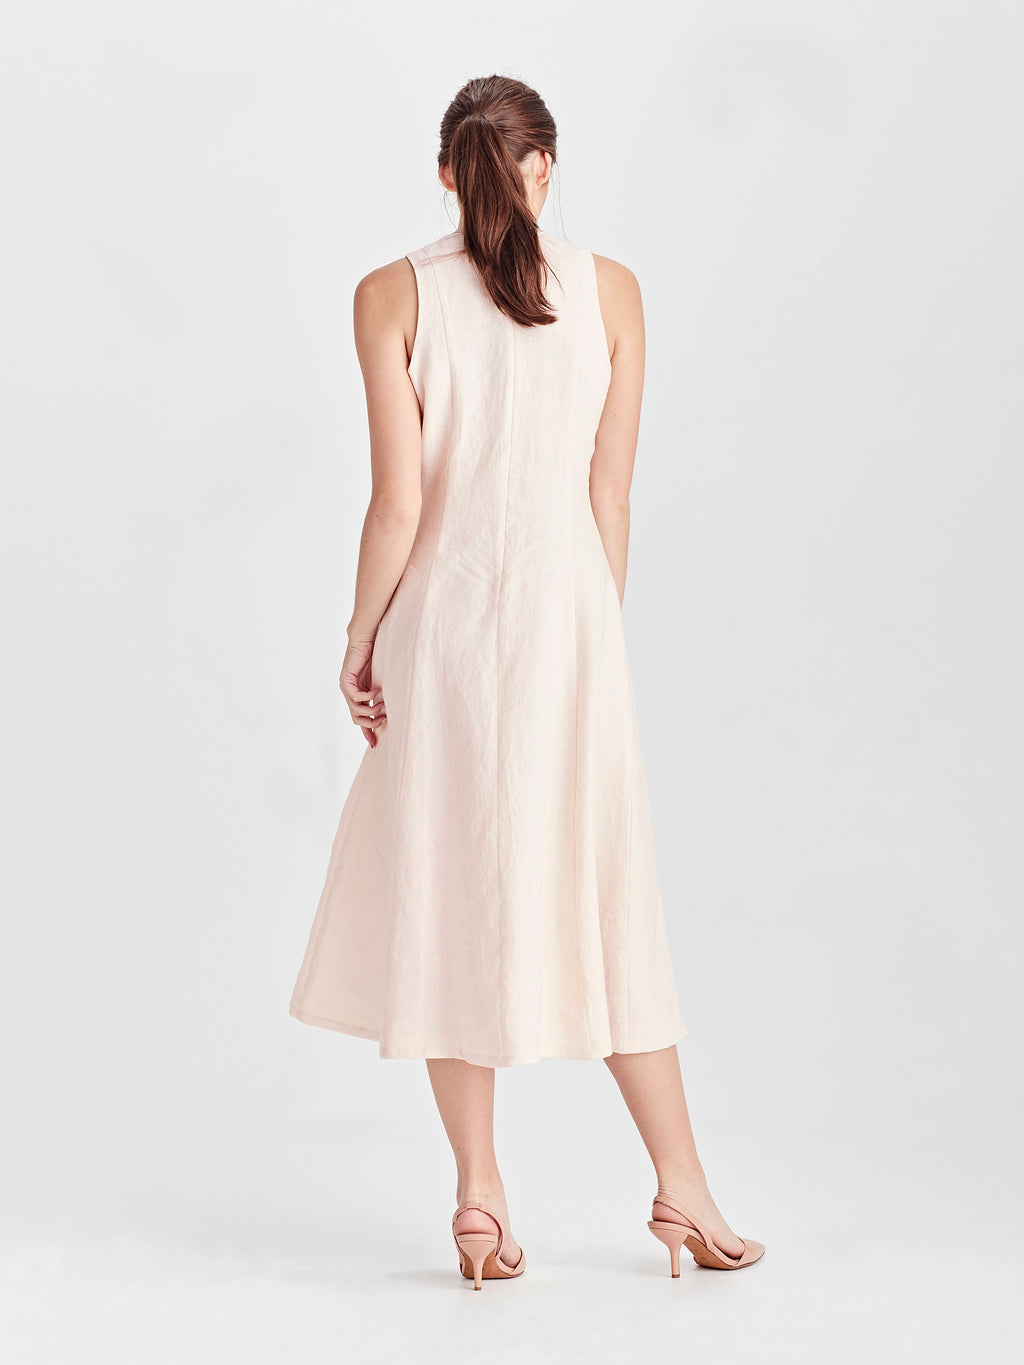 Meredith Dress (Summer Linen) Ballet